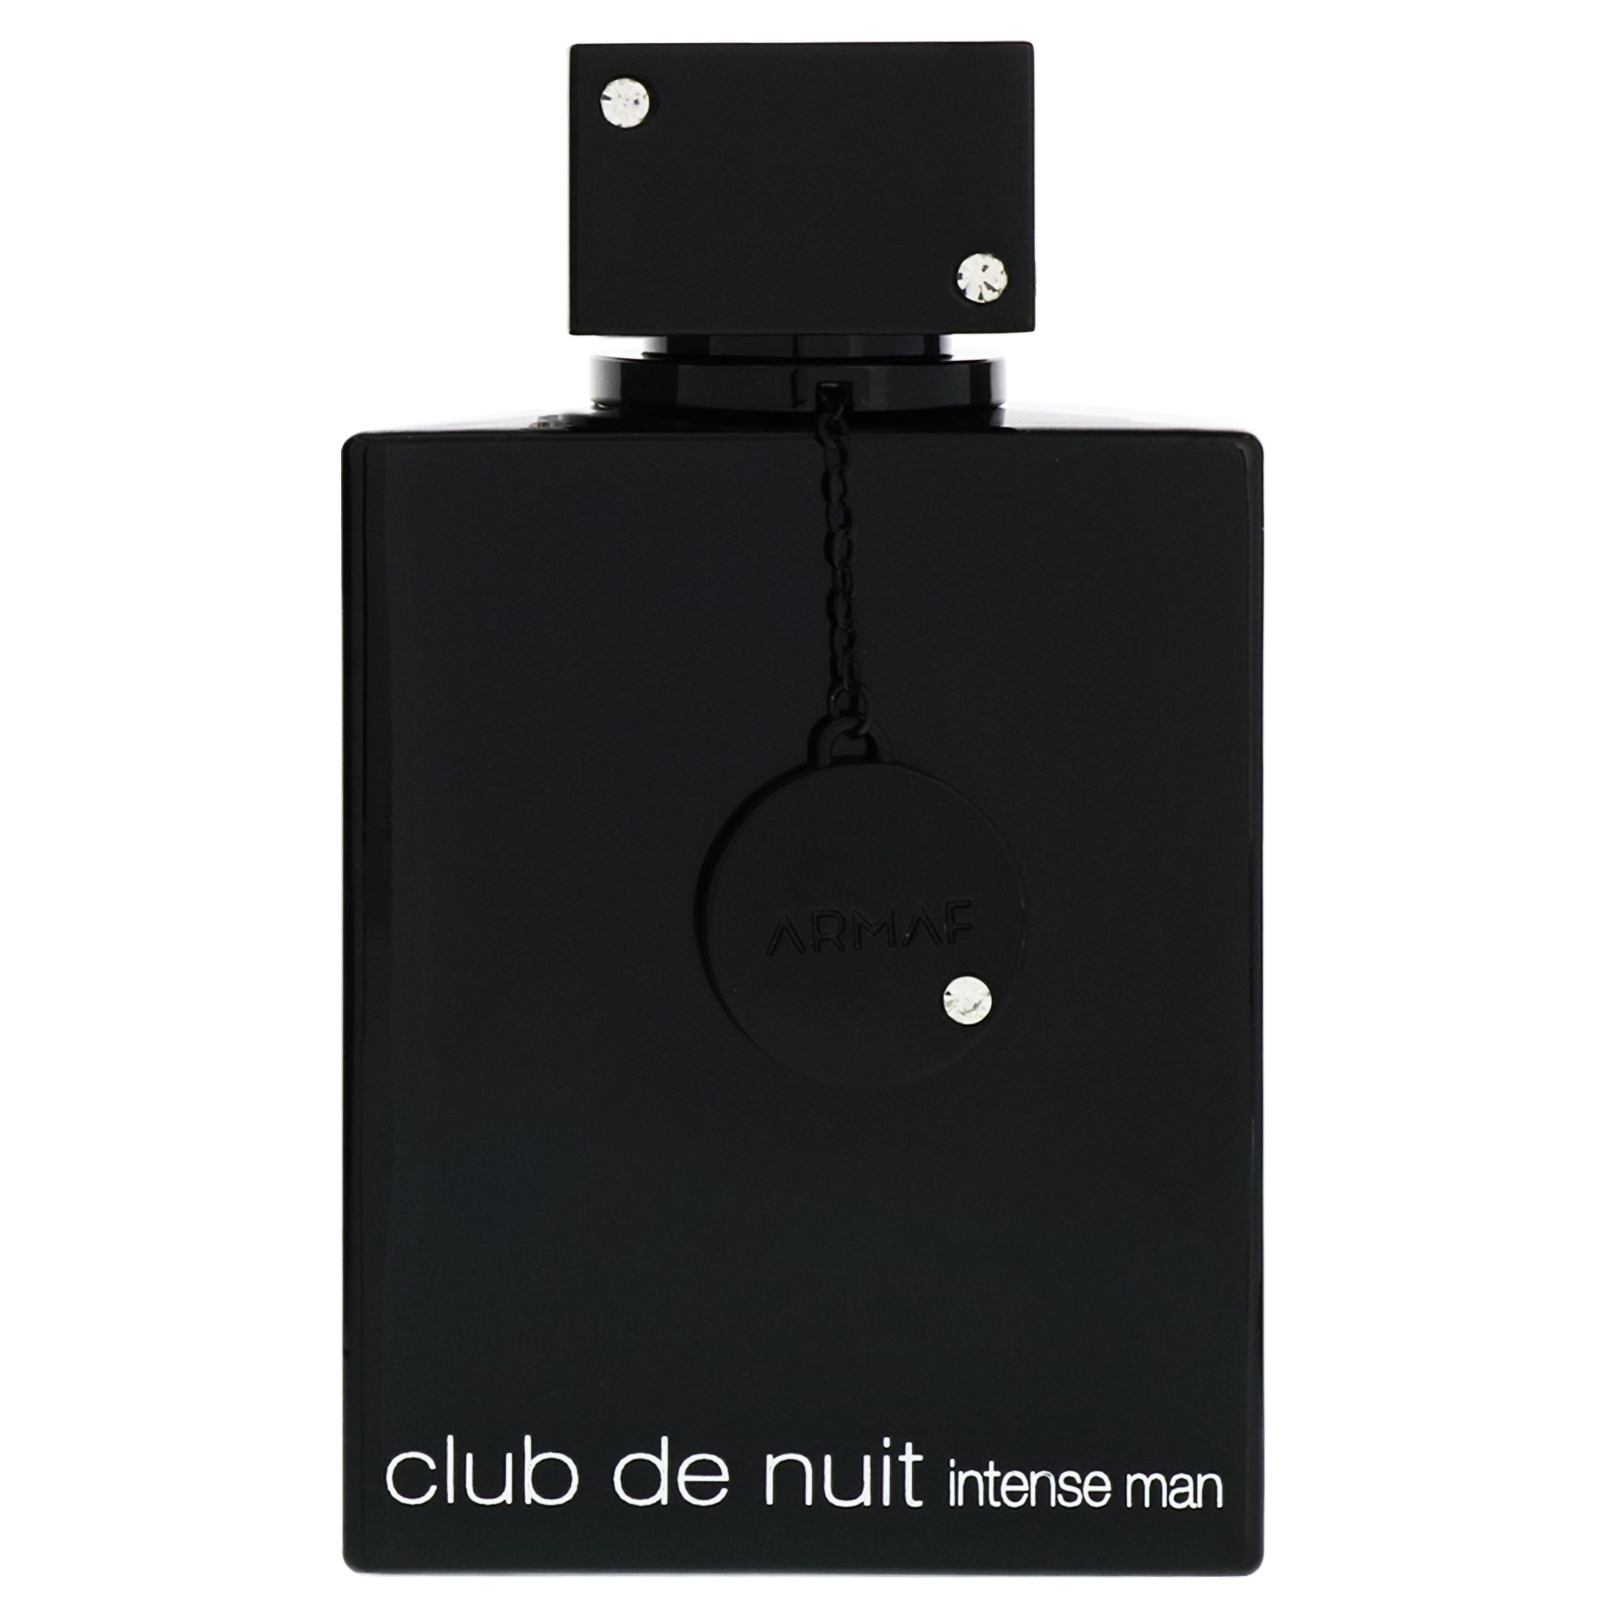 Armaf Club De Nuit Intense Man 香水纯香水喷雾 150ml